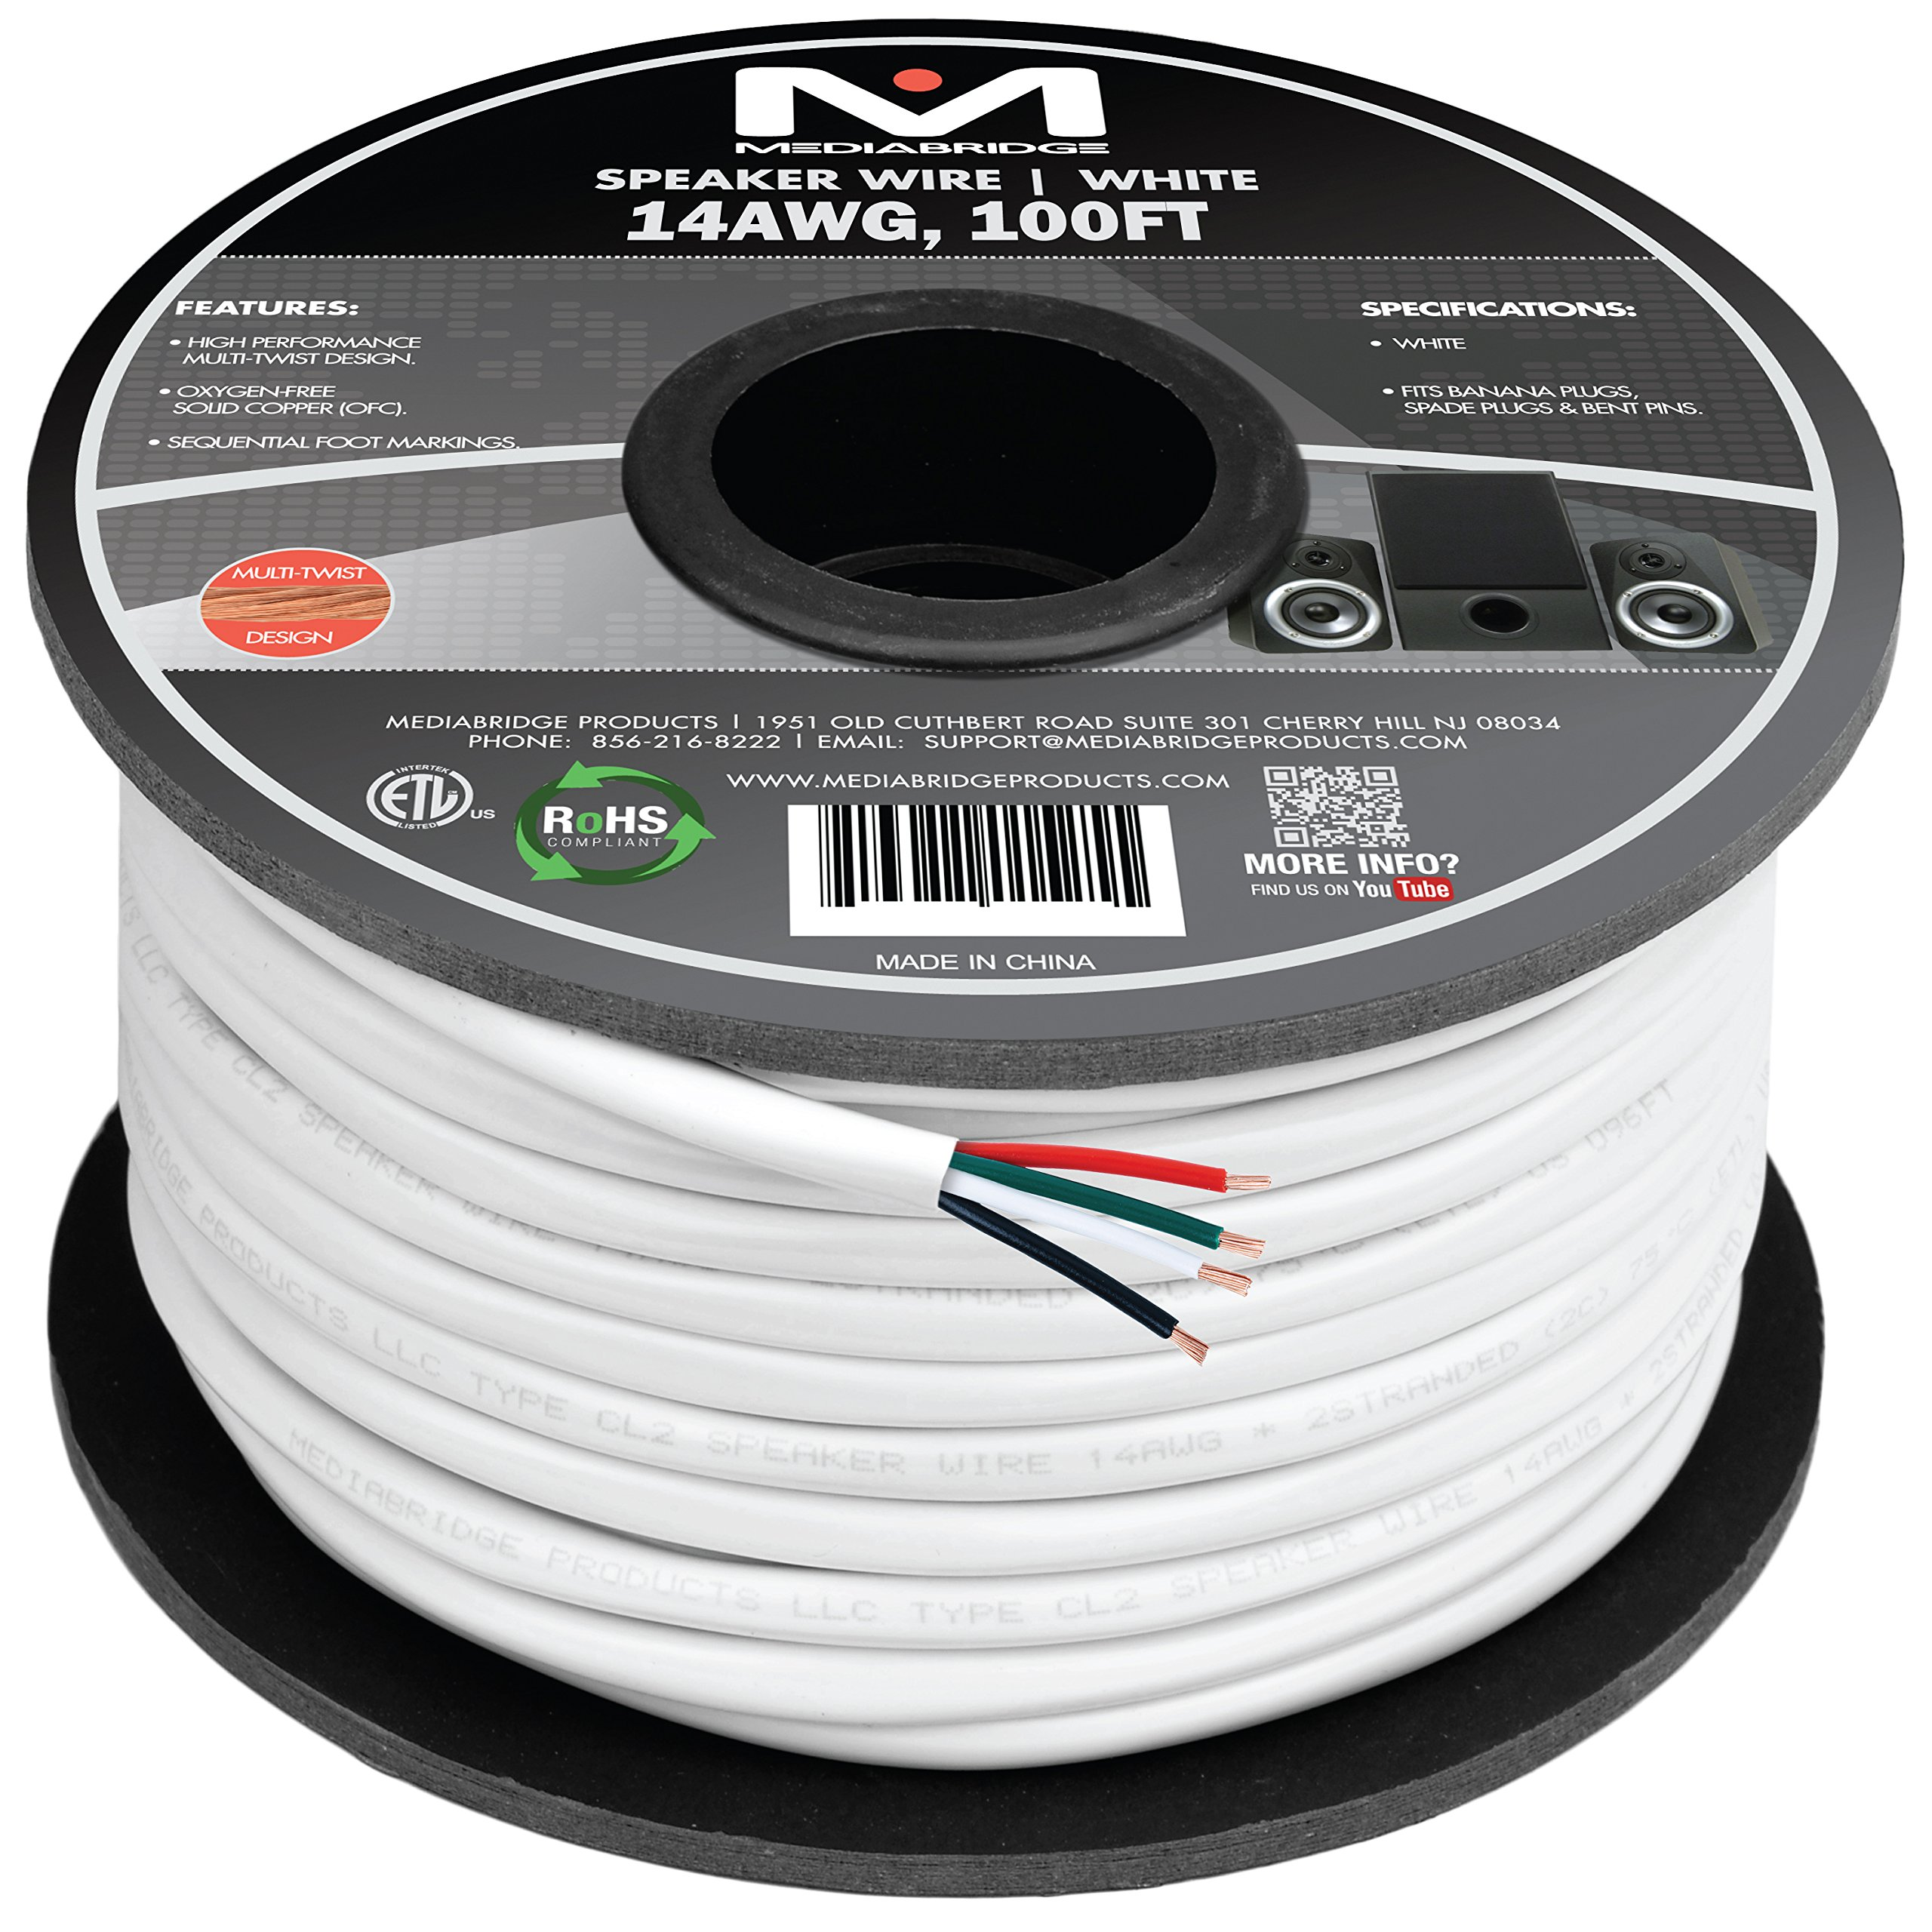 Mediabridge 14AWG 4-Conductor Speaker Wire (100 Feet, White) - 99.9% Oxygen Free Copper - ETL Listed & CL2 Rated for in-Wall Use (Part# SW-14X4-100-WH) by Mediabridge